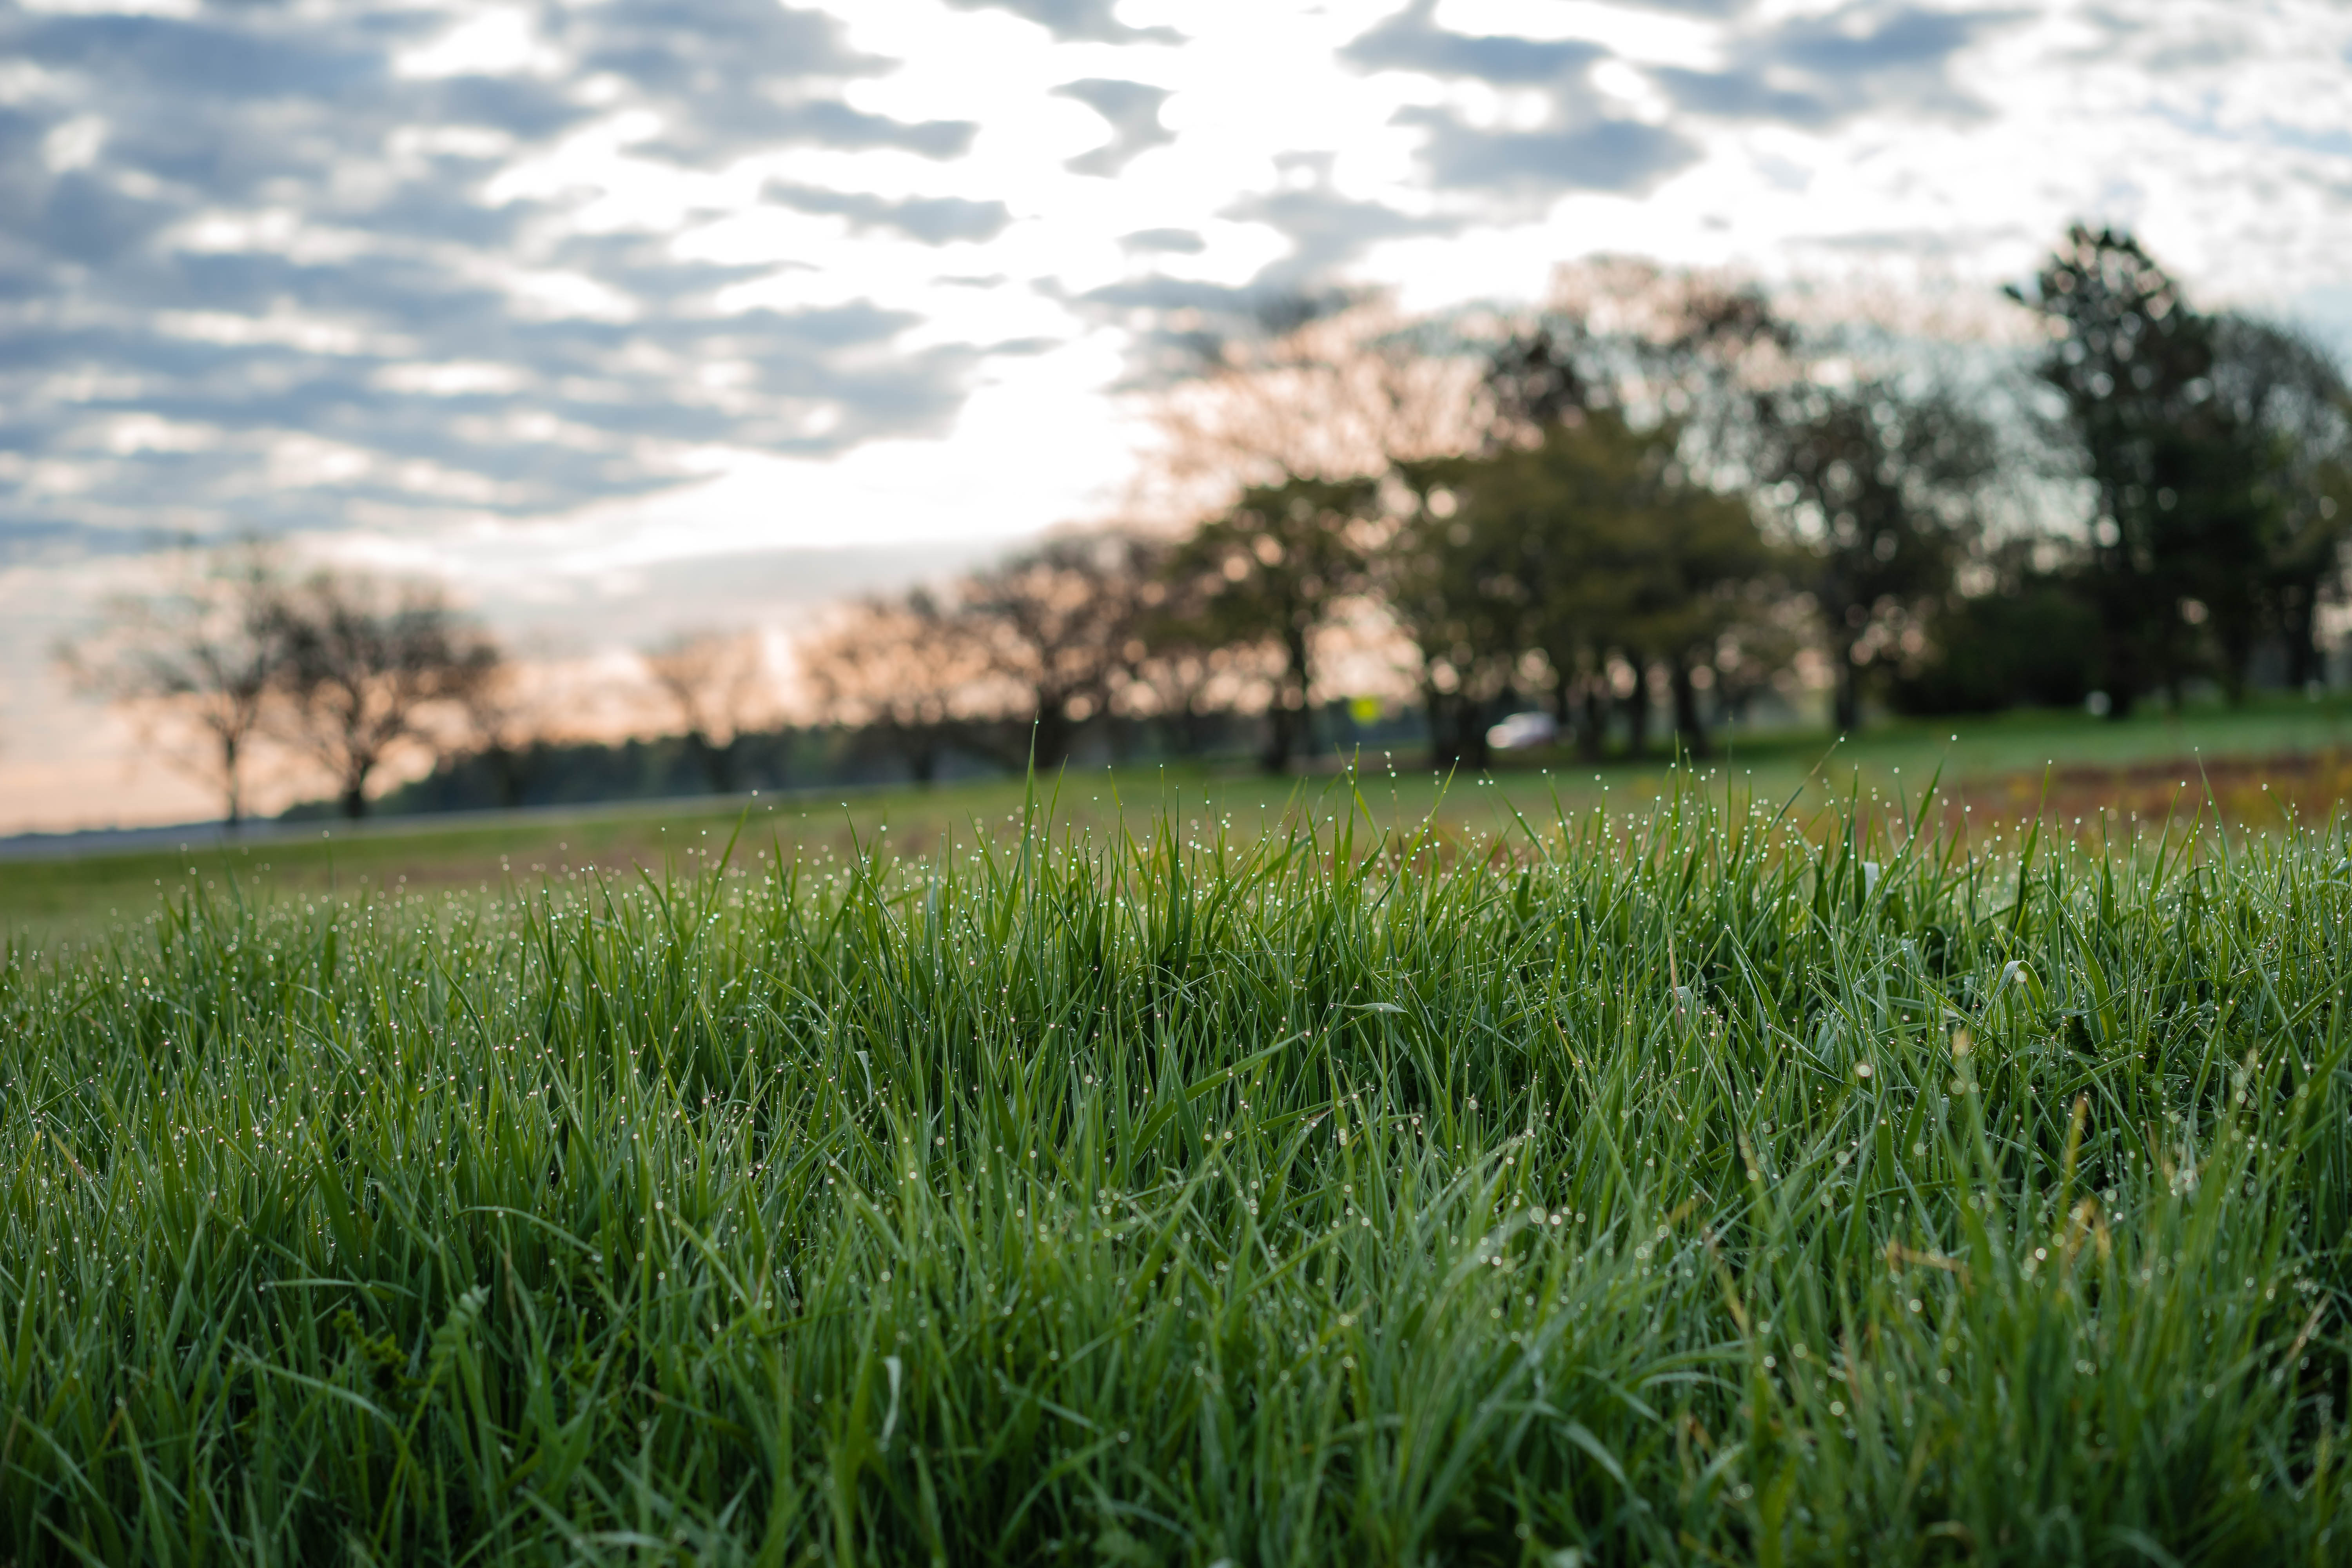 Can't wait to see dew on green grass again! nature, landscape, sky, plant, tree, grass, cloud Photo: Leticia Shaddix